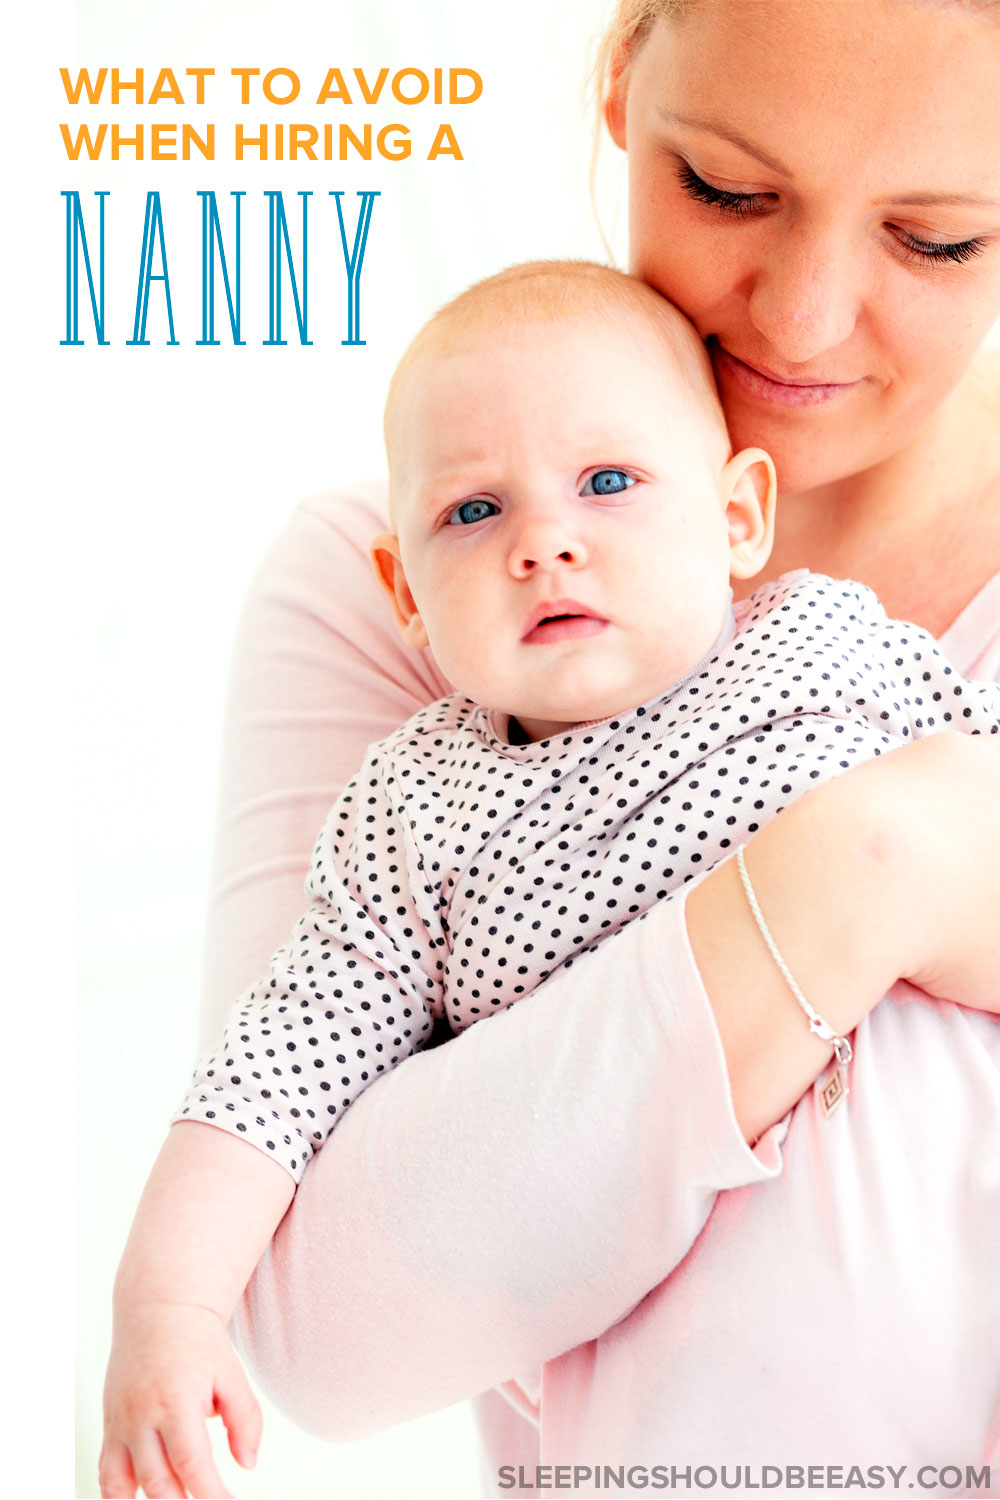 Hiring a nanny can be a stressful experience. Here's what to avoid when employing a nanny, interviewing childcare providers and making your selection.